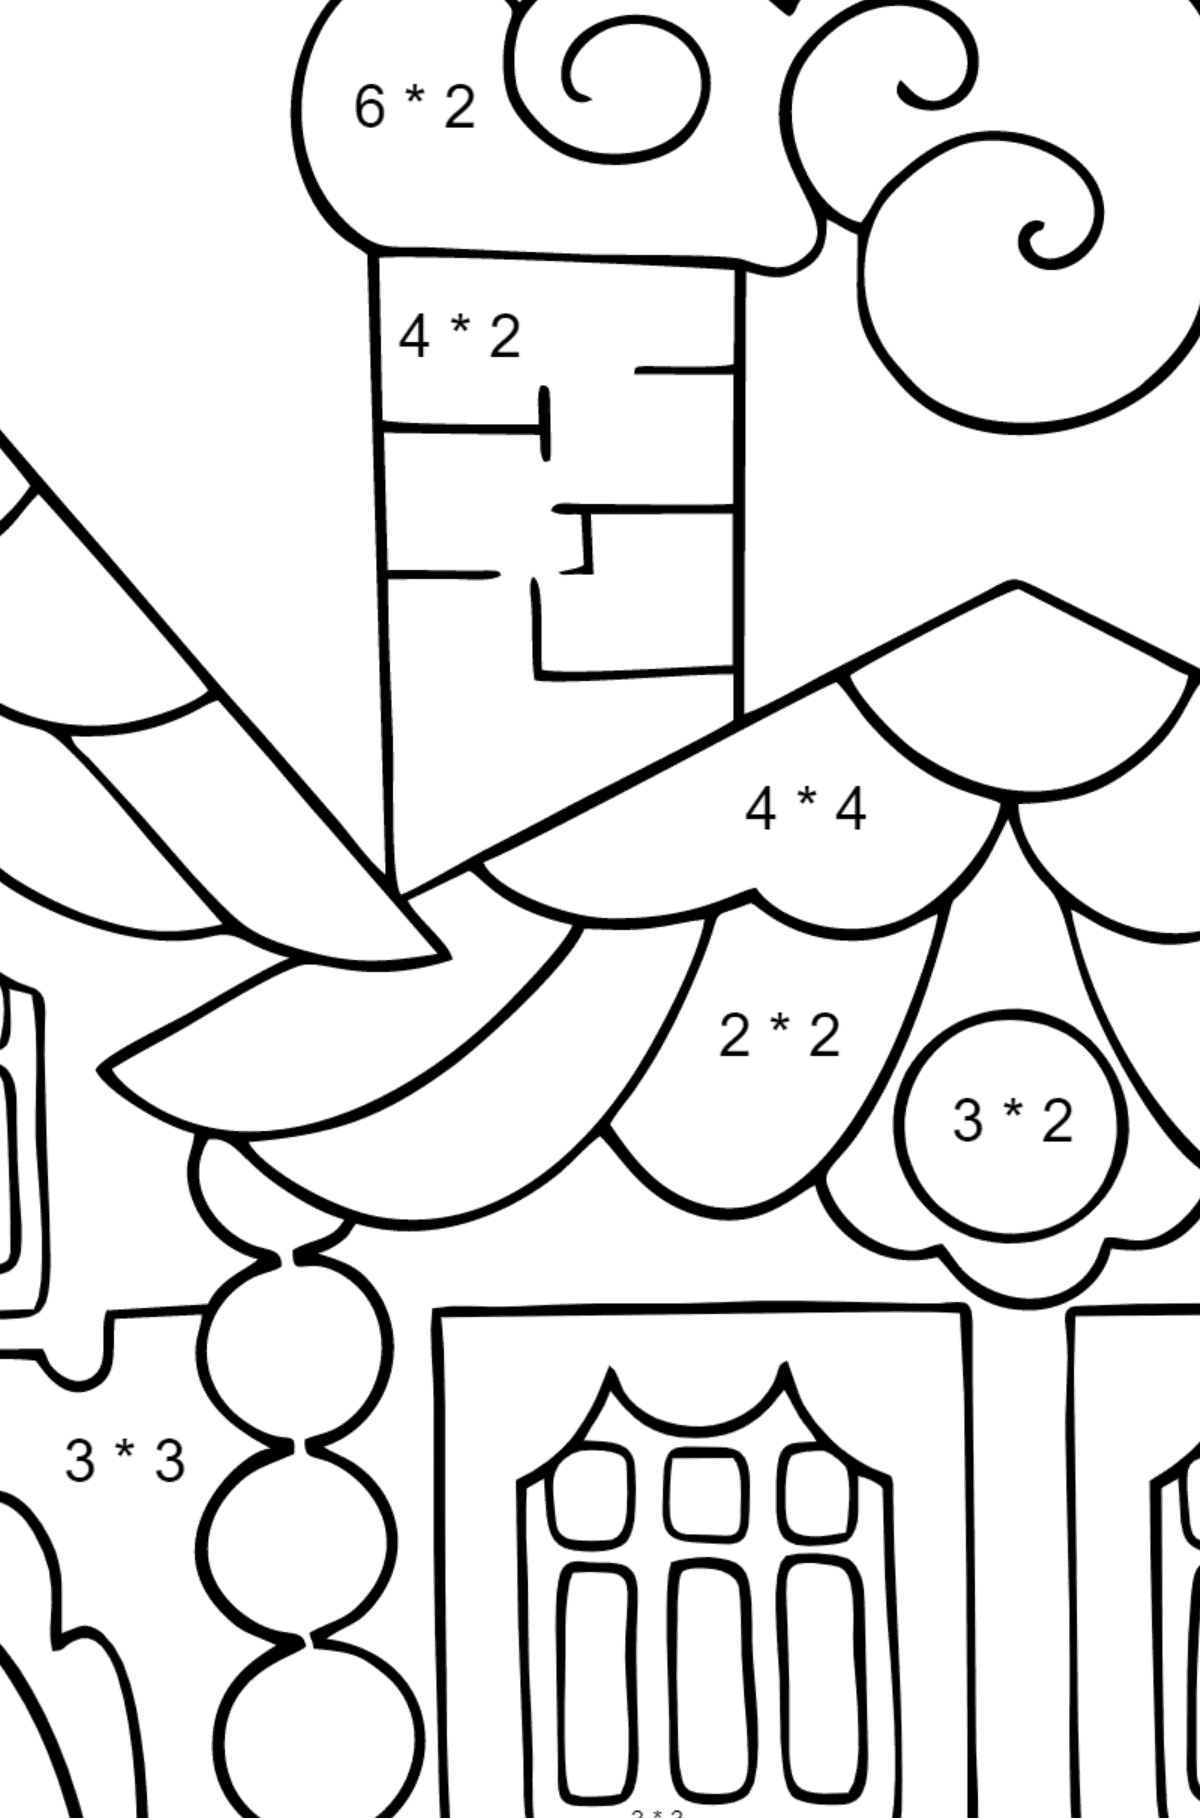 Simple Coloring Page - A House in the Forest - Math Coloring - Multiplication for Kids